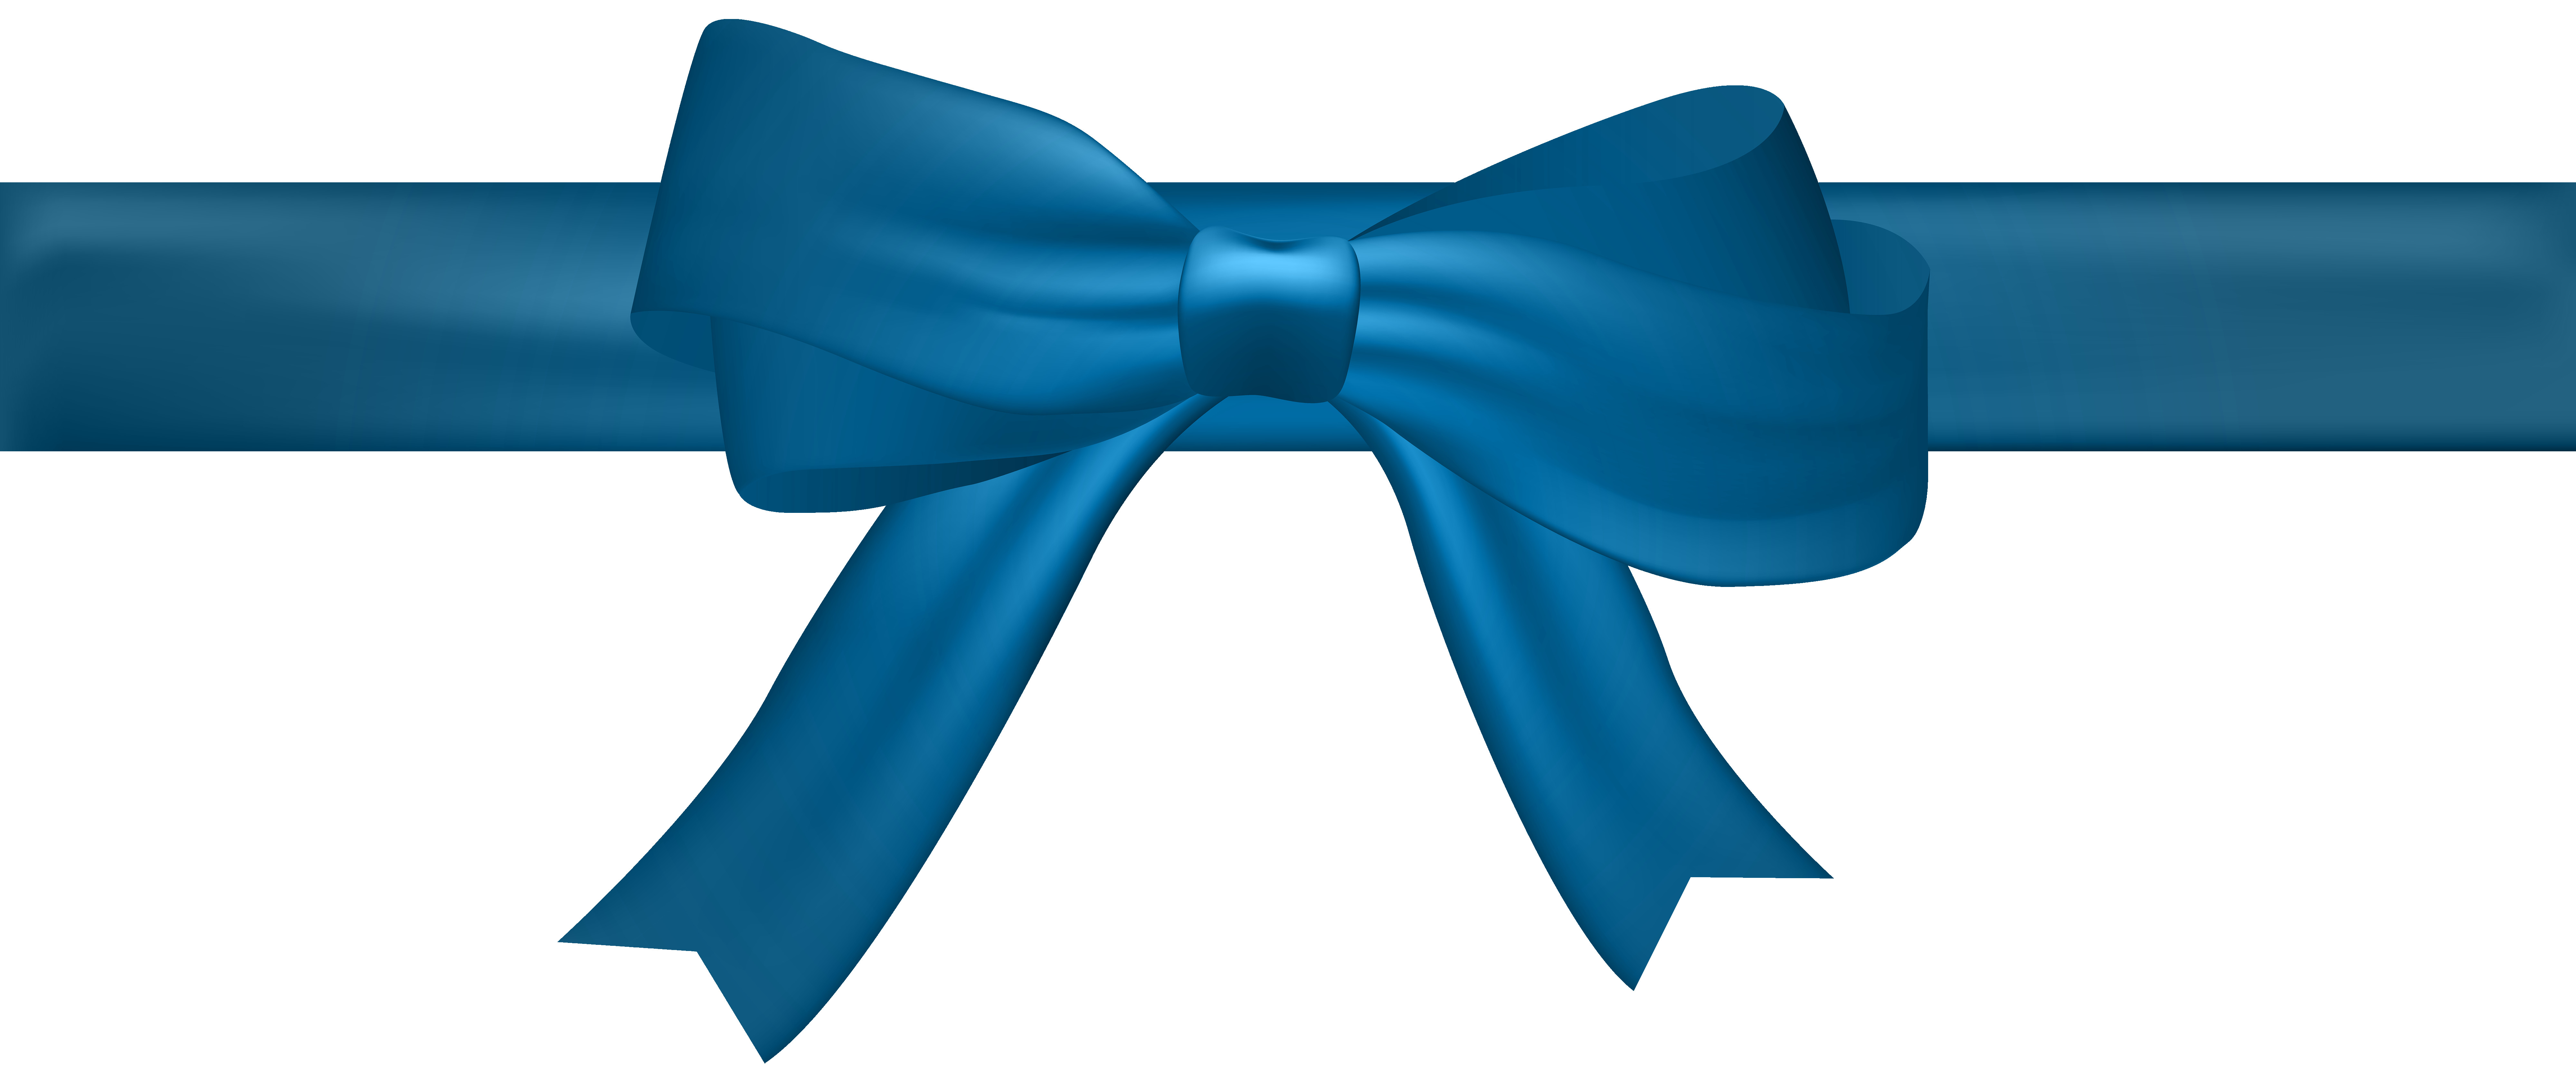 8000x3337 Bow Tie Clipart Png And Jpg Neck By Betsyrainbow Unbelievable Blue